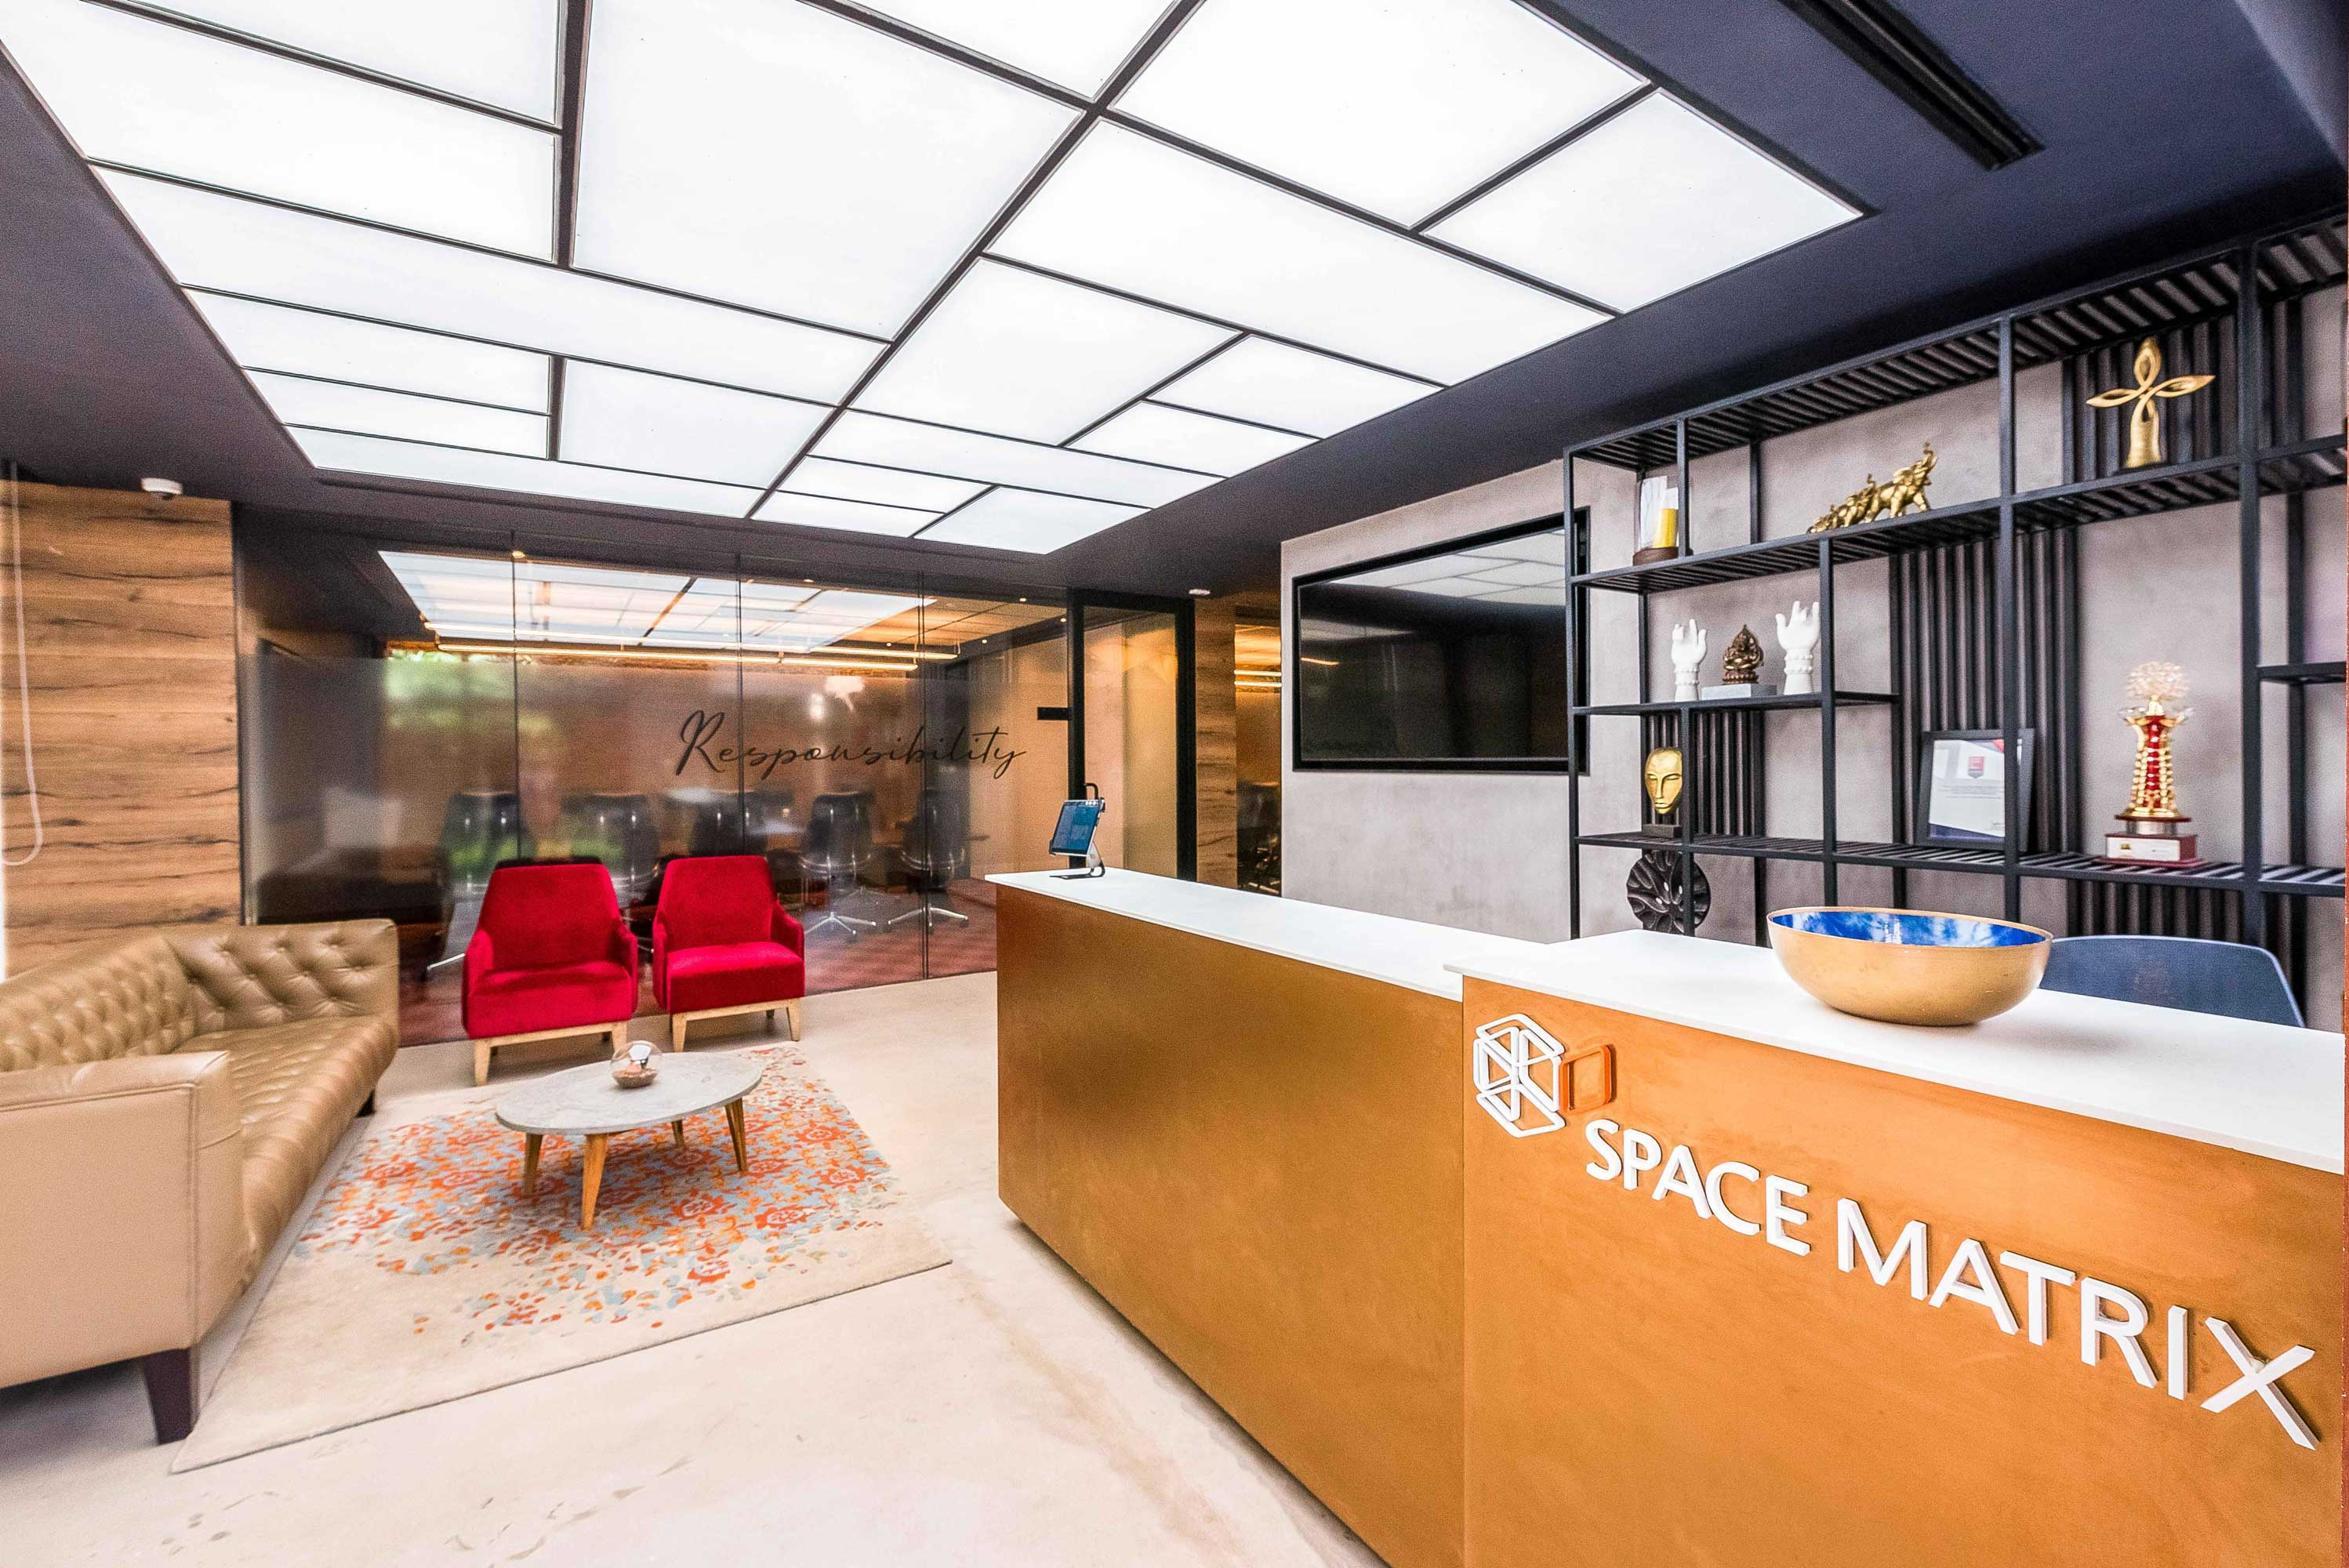 Space Matrix Bangalore leverages the latest corporate office design ideas to build its own workspace